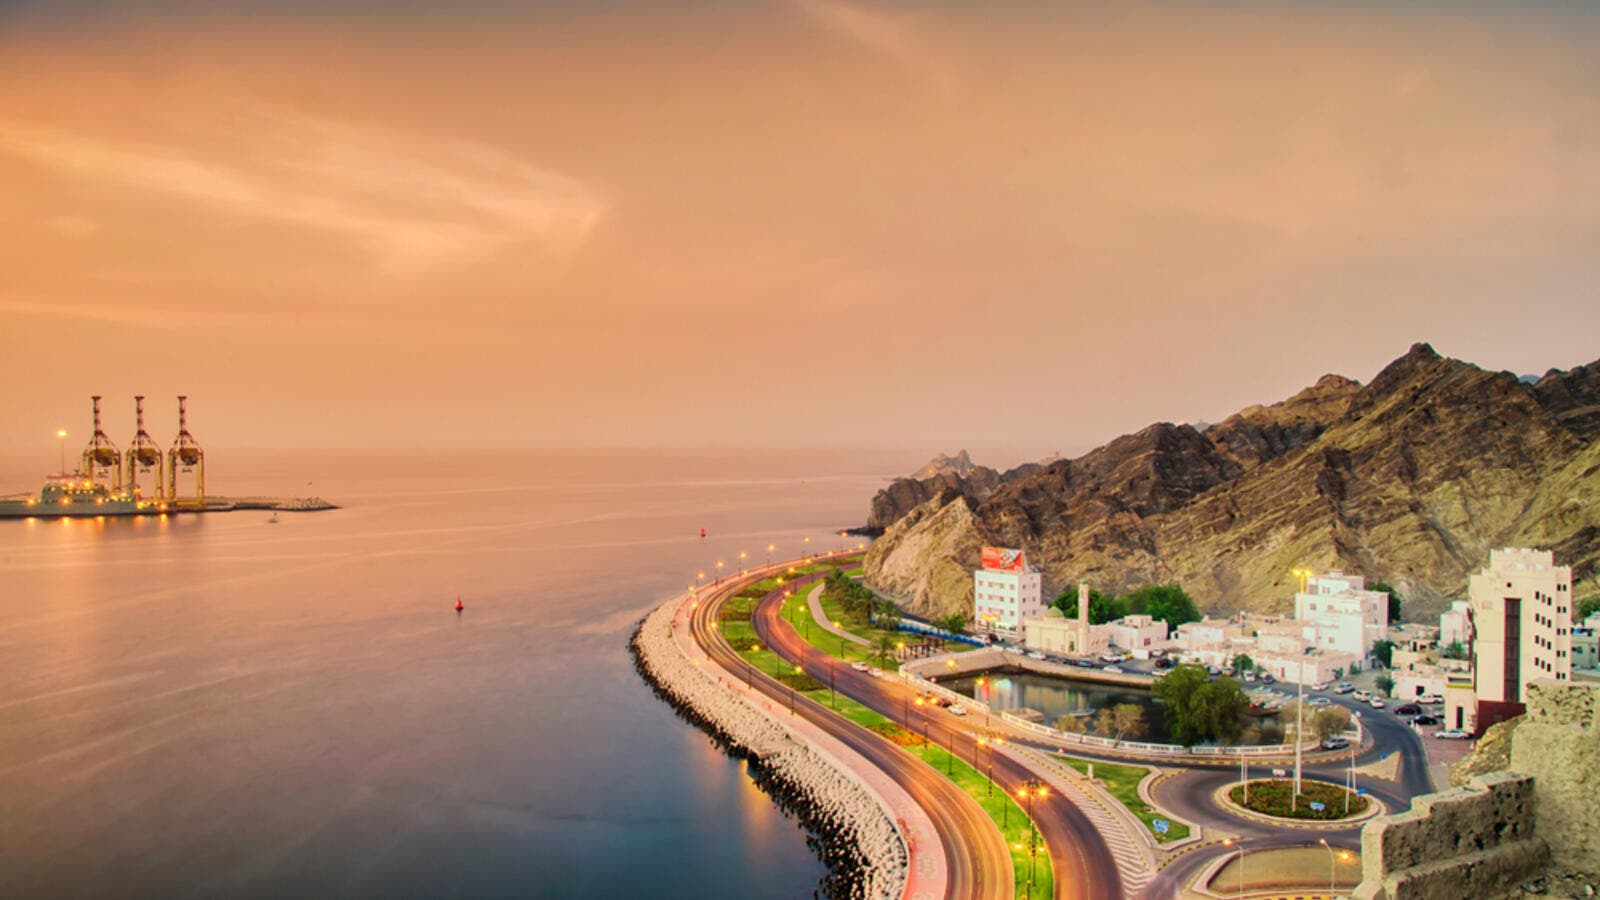 Overall, in terms of quality of life, Oman has been ranked 35th in the world among the 64 countries polled.